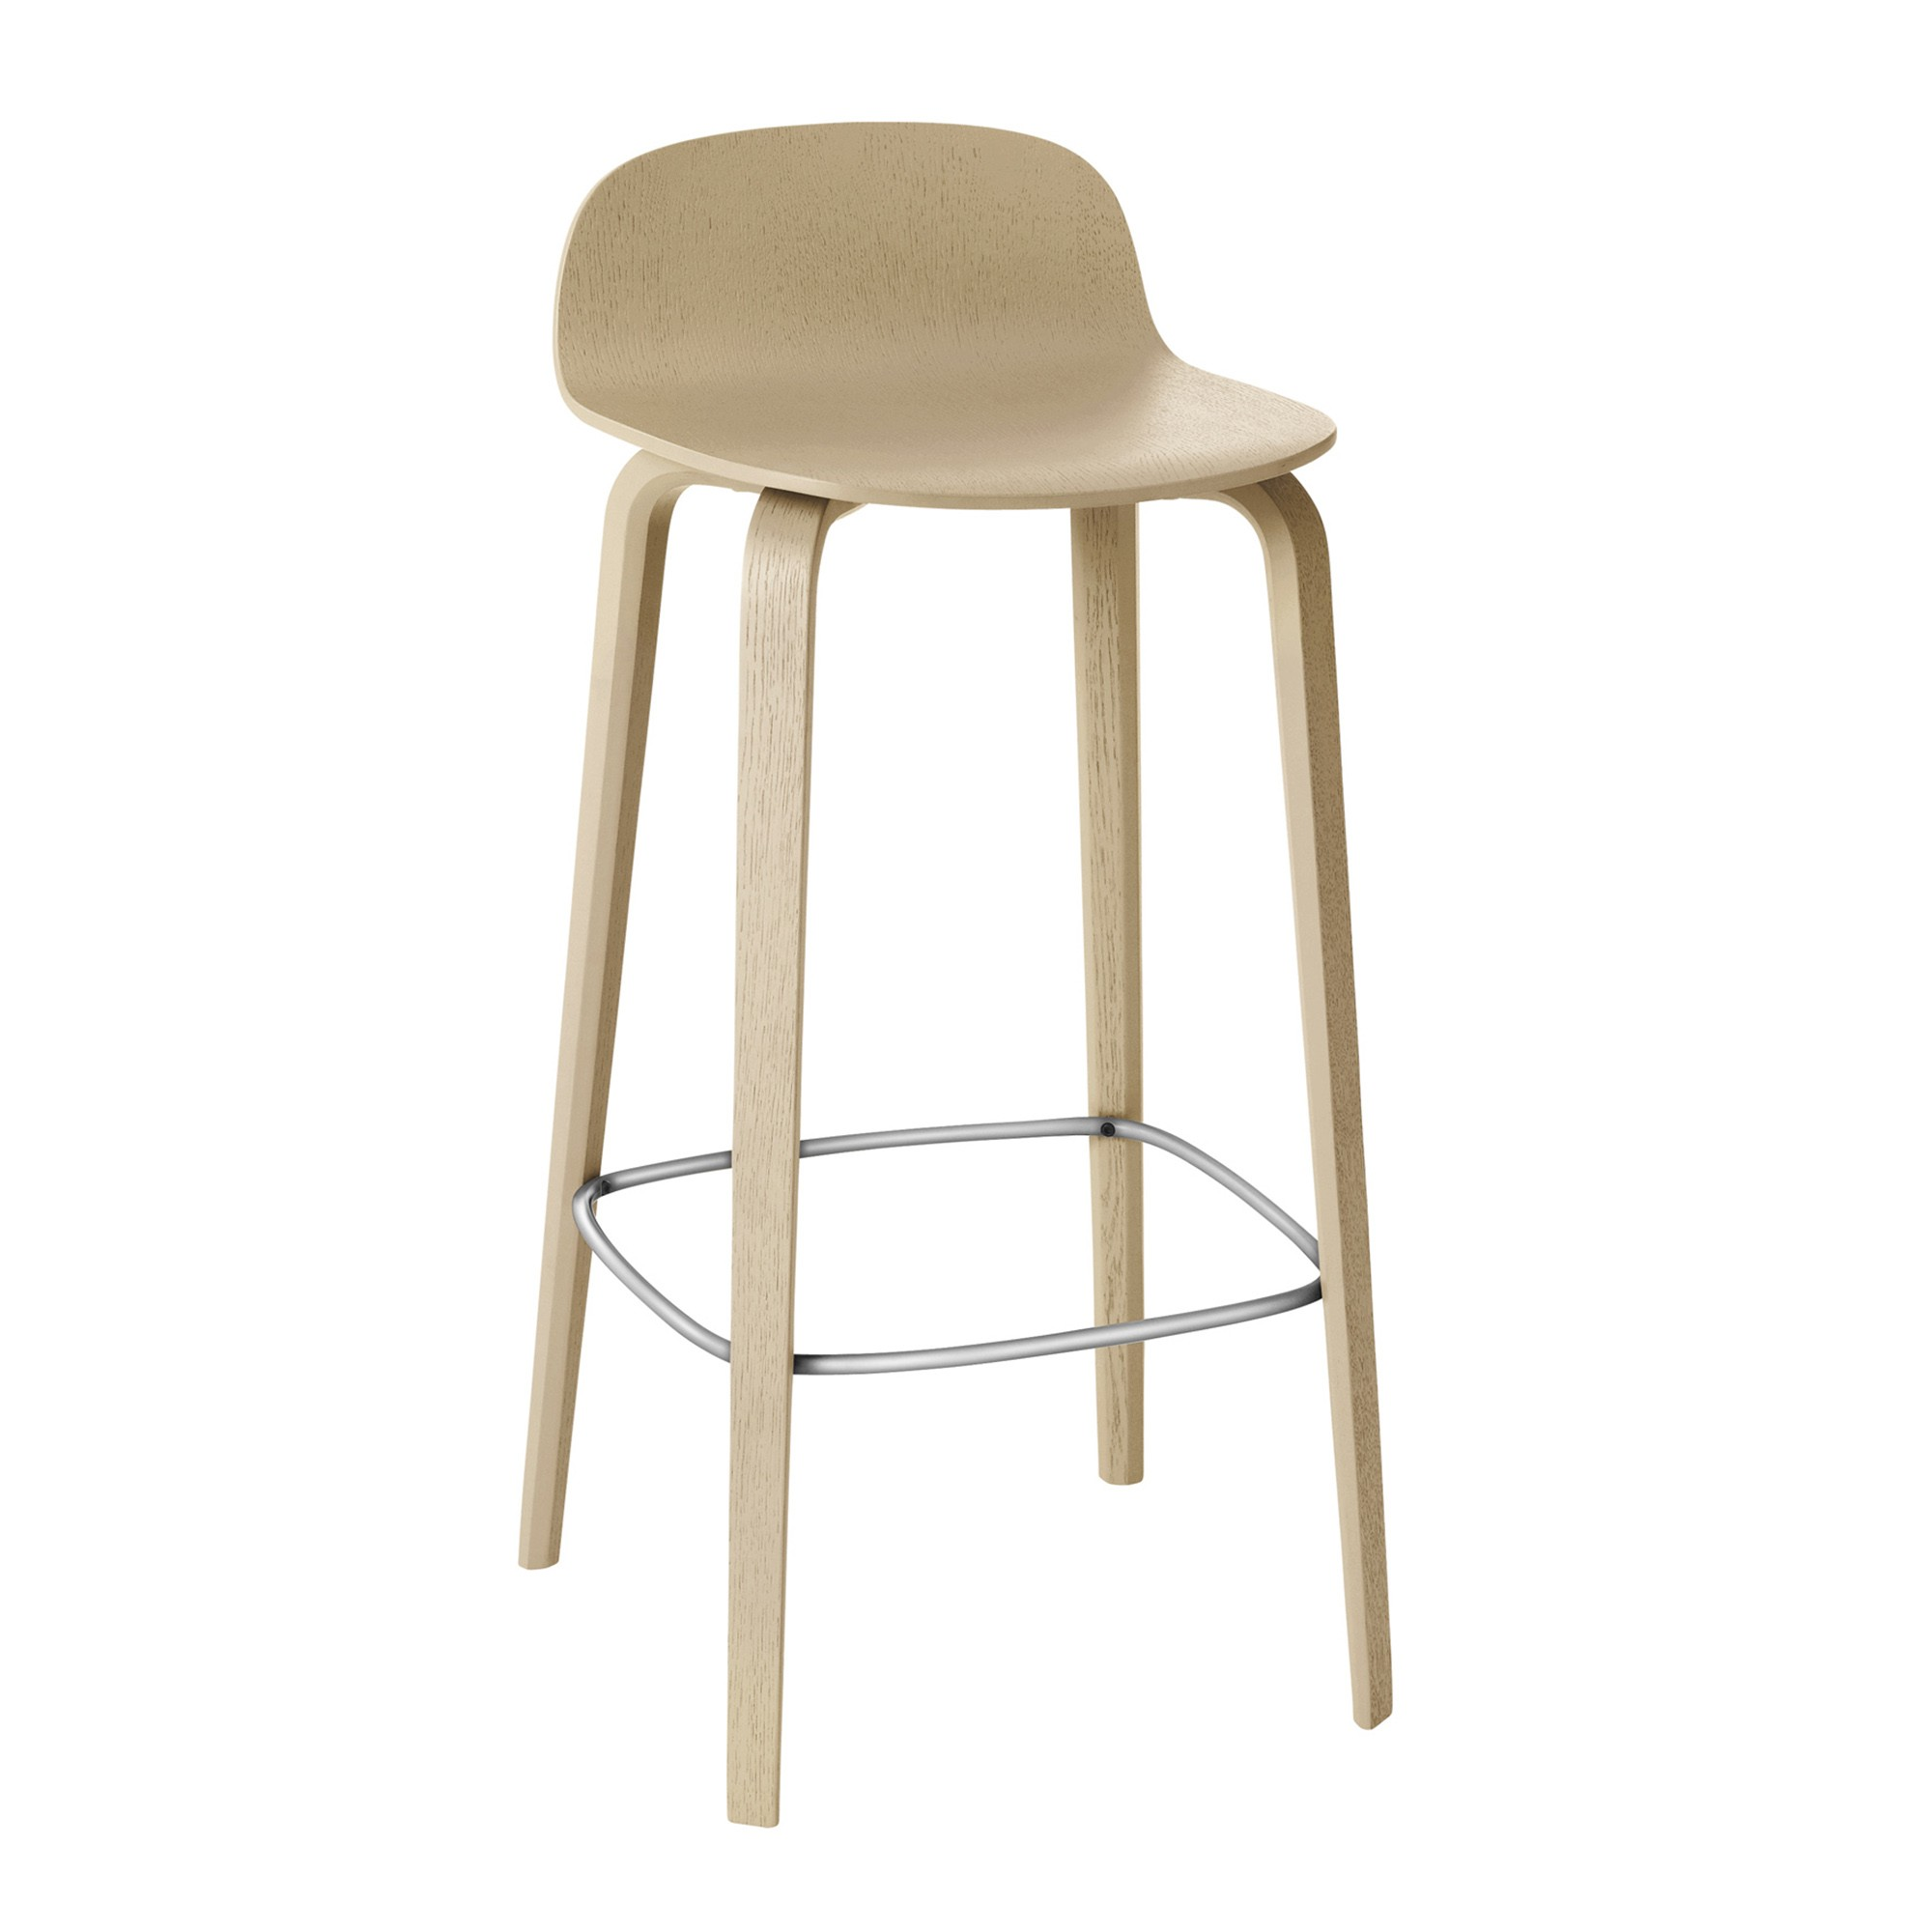 Tabouret De Bar Scandinave Blanc Large Size Of Design Tabouret De